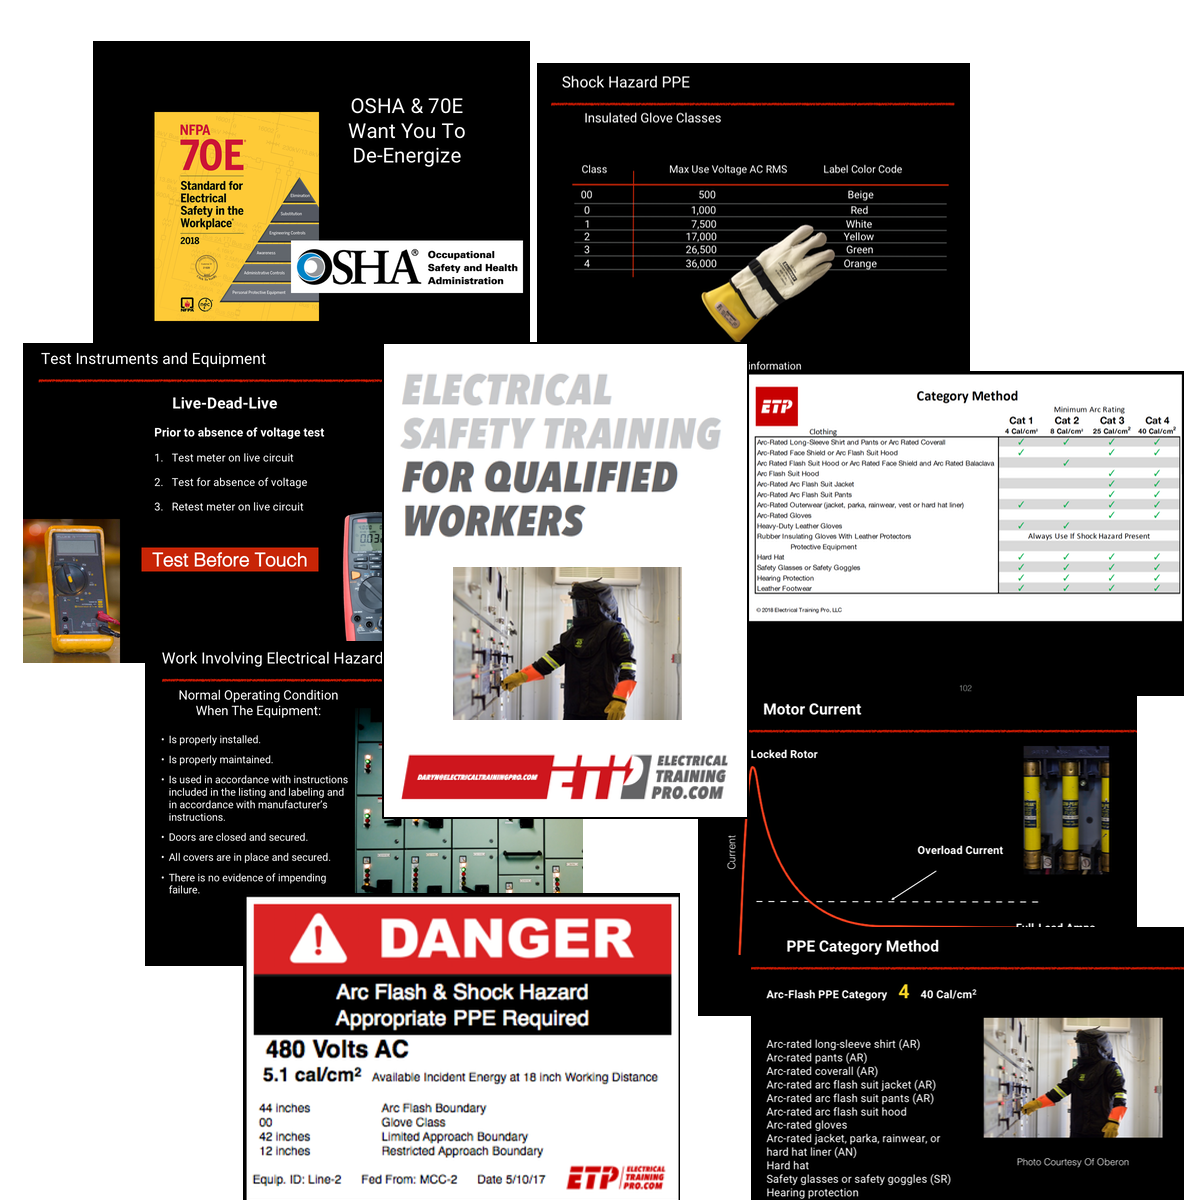 Practical Guide To Arc Flash And Nfpa70e By Daryn Lewellyn Frequency Circuit Includes Knife Switch Breaker Inverter A Shock Hazard Would Still Be Present De Energize Panel We Will Need Go The Upstream That Feeds